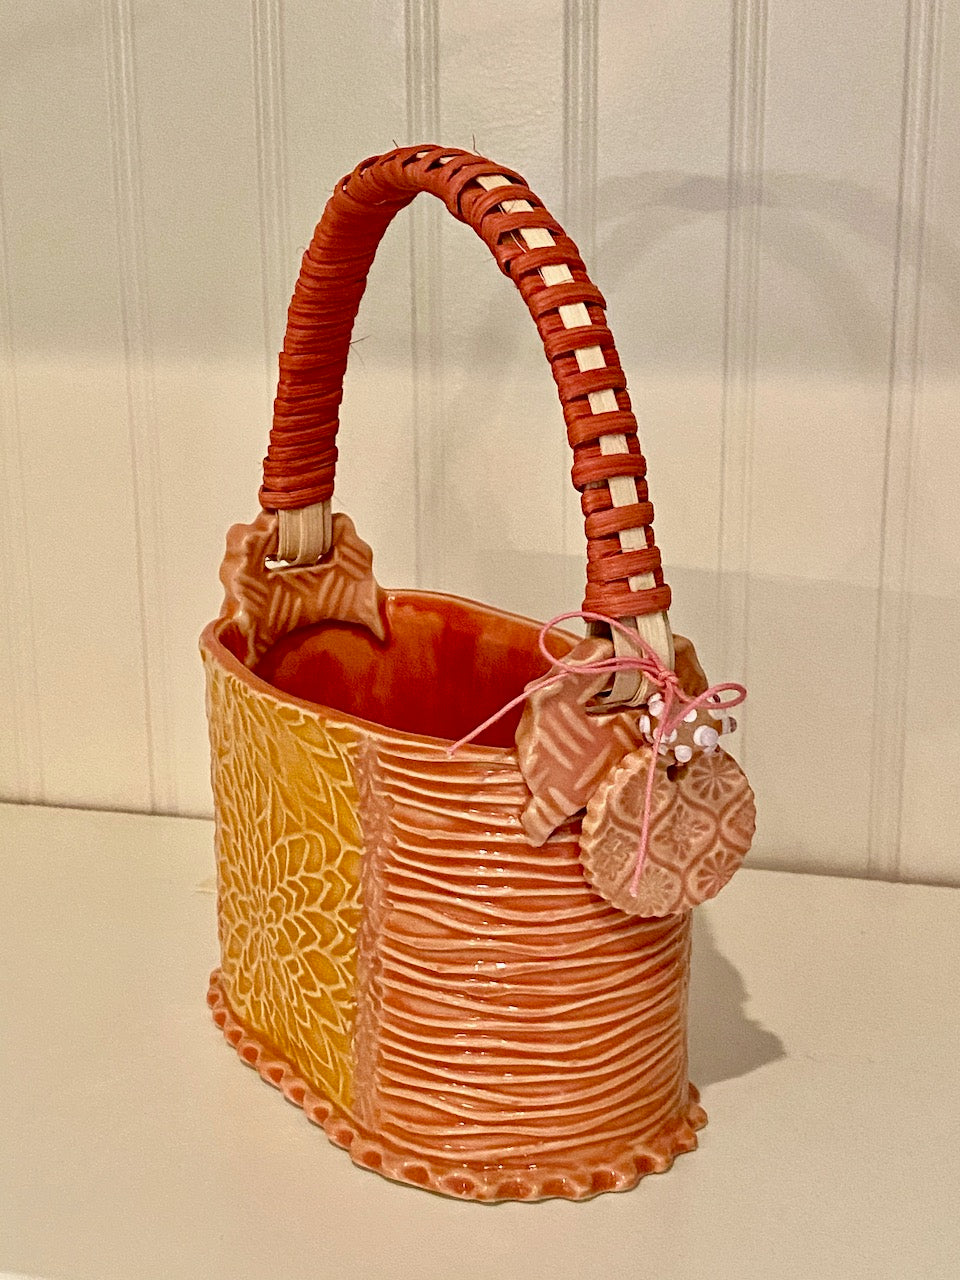 Rattan handled ceramic Basket SOLD OUT